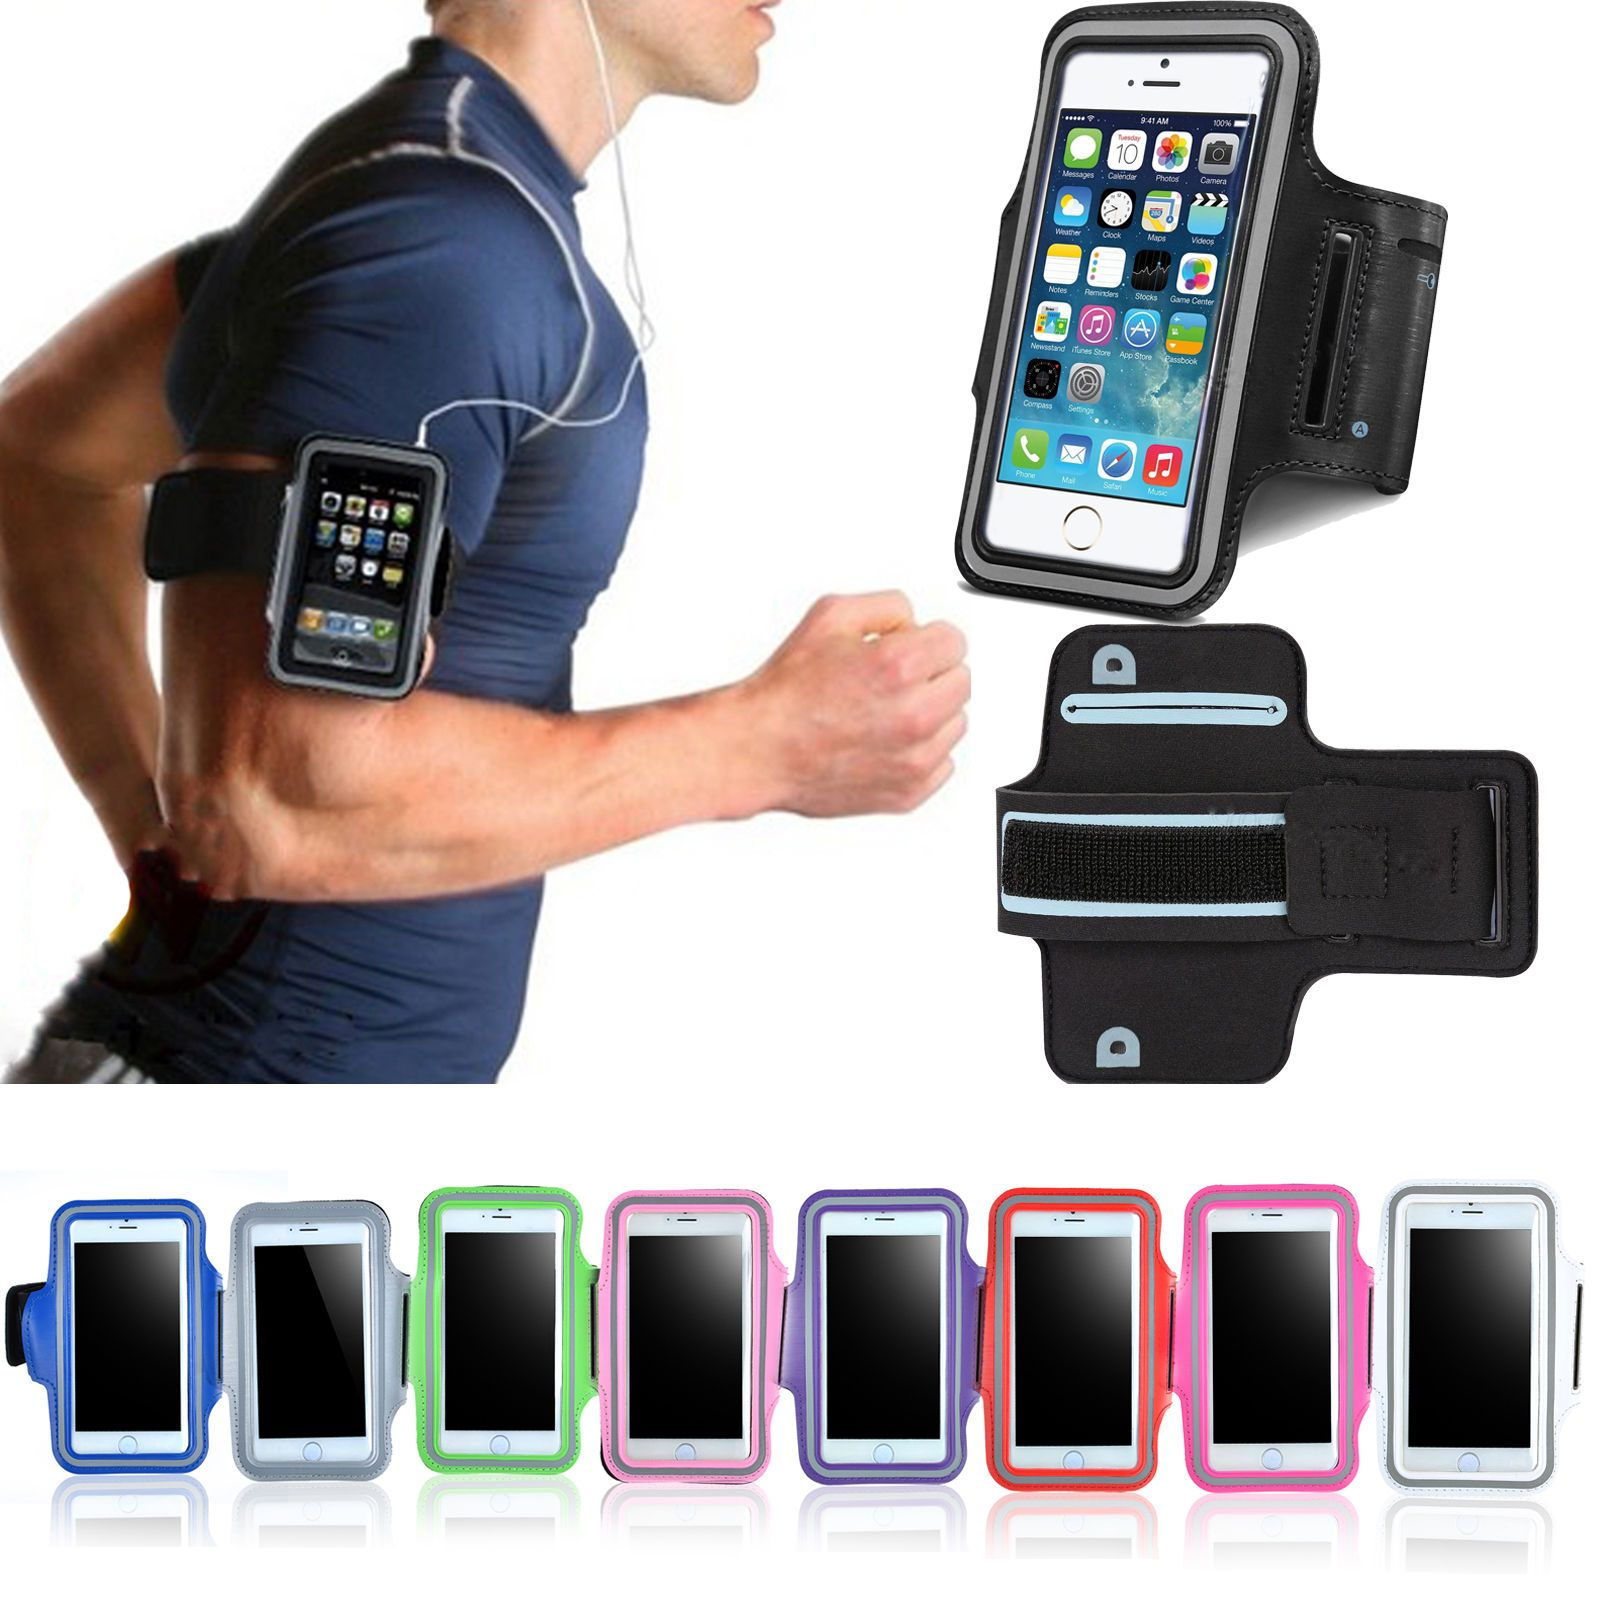 Mobile Phone Accessories Sports Running Waterproof Armband For Iphone 5s Cover Nylon Pouch Arm Band For Apple Iphone5s Se 5 5c 5s Phone Cases Bag Armbands